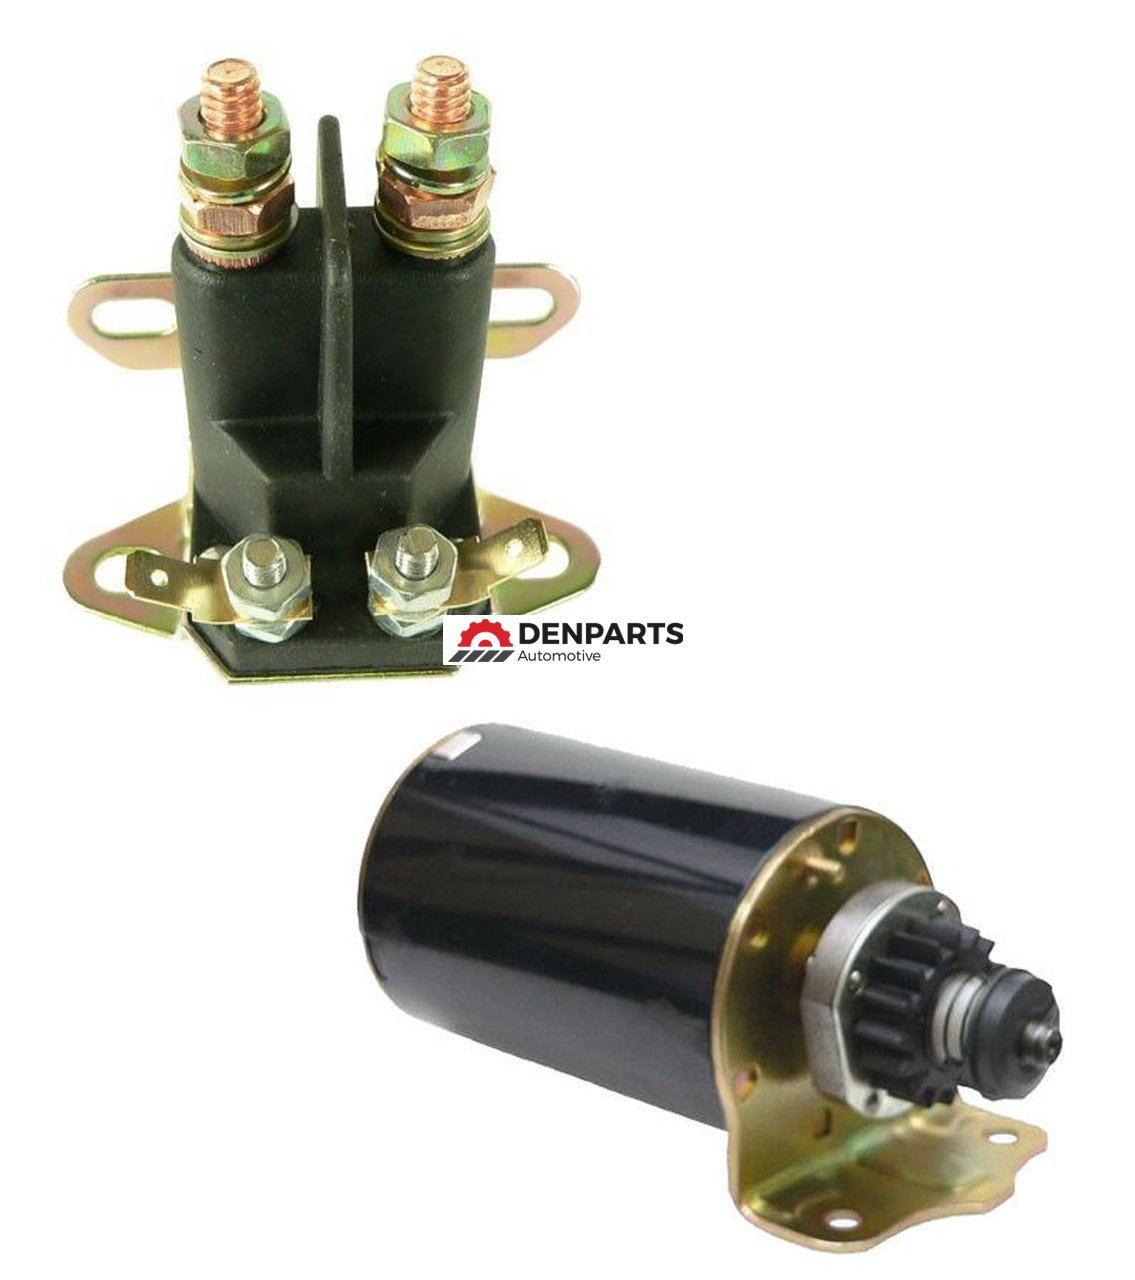 STARTER SOLENOID KIT FOR CUB CADET TRACTORS 1220 1215 12HP GAS 1987 1988